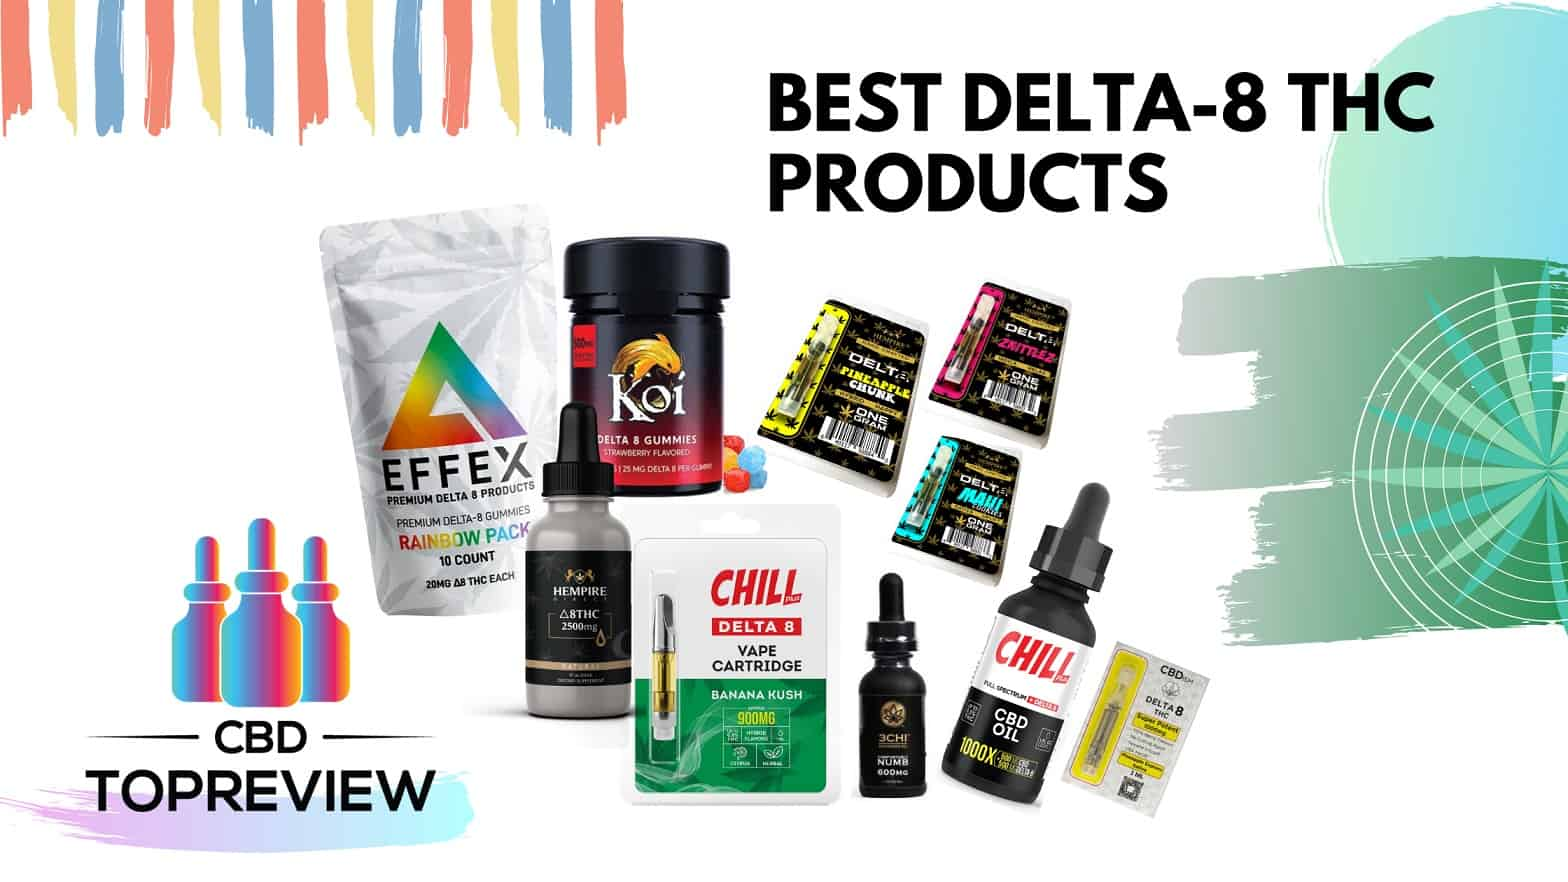 Best Delta 8 thc products